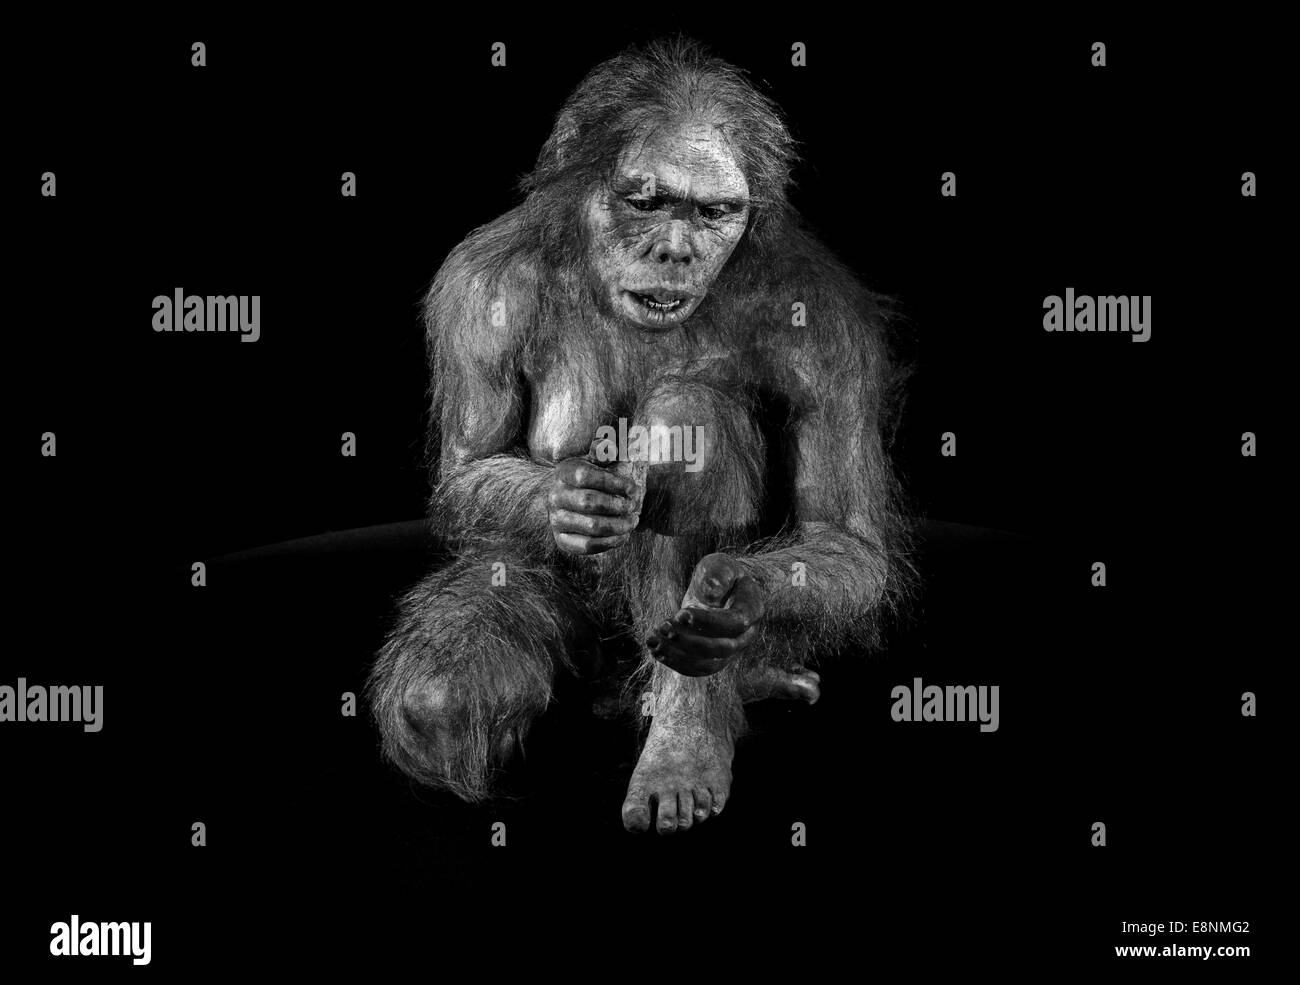 Spain, Burgos: Hominid 'Lucy' (Australopithecus afarensis) in the Museum of Human Evolution in black and - Stock Image